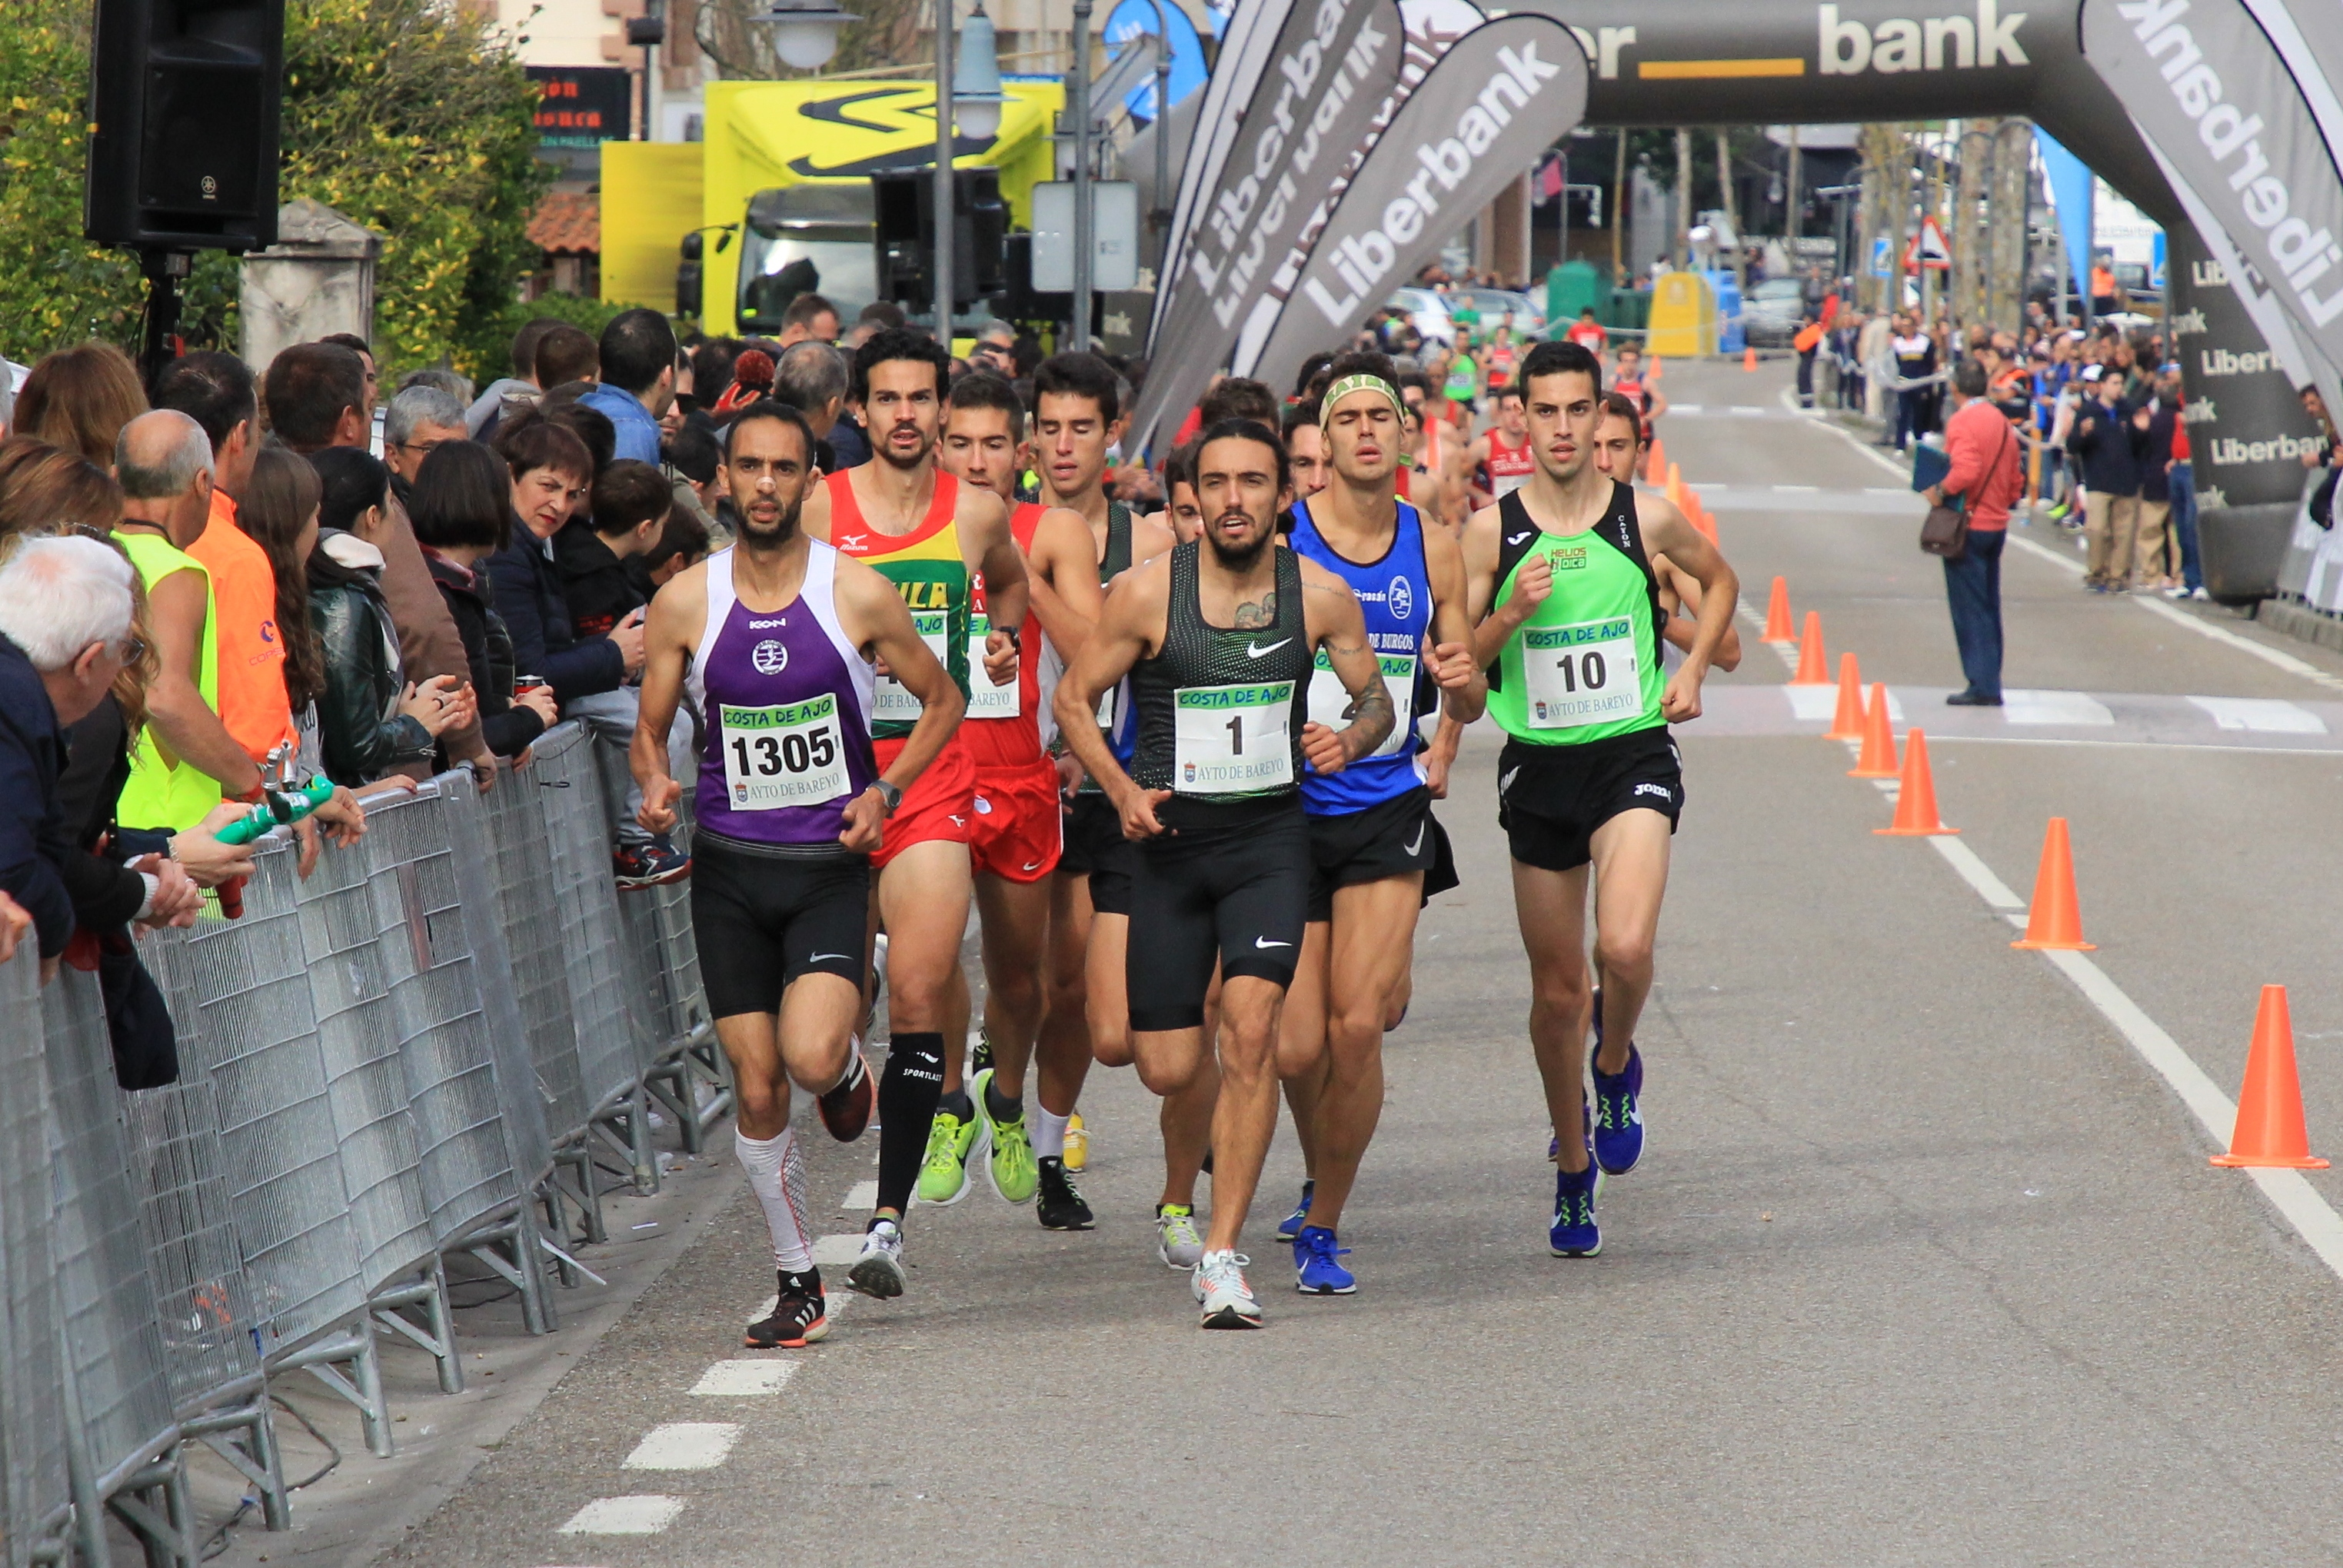 2018-11-04 XXIV Carrera Popular Costa de Ajo 952